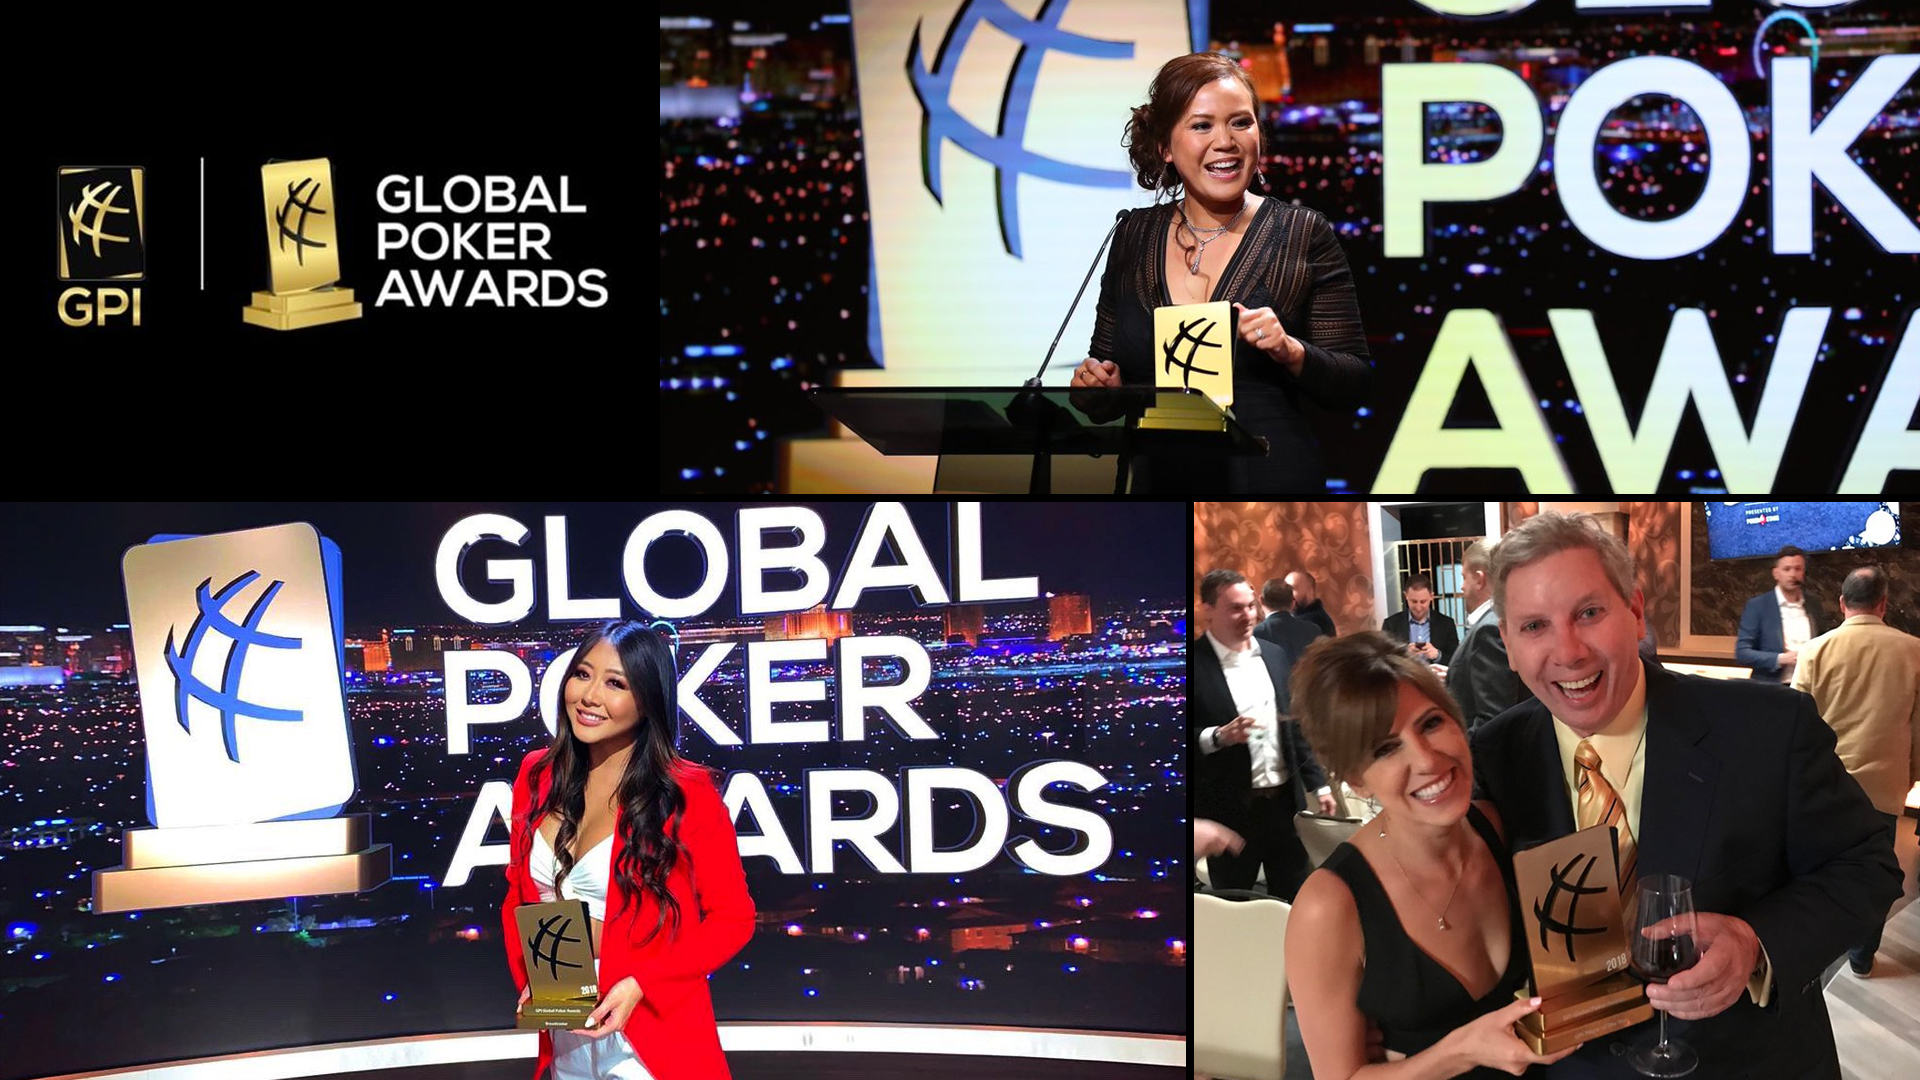 Global Poker Awards Highlights